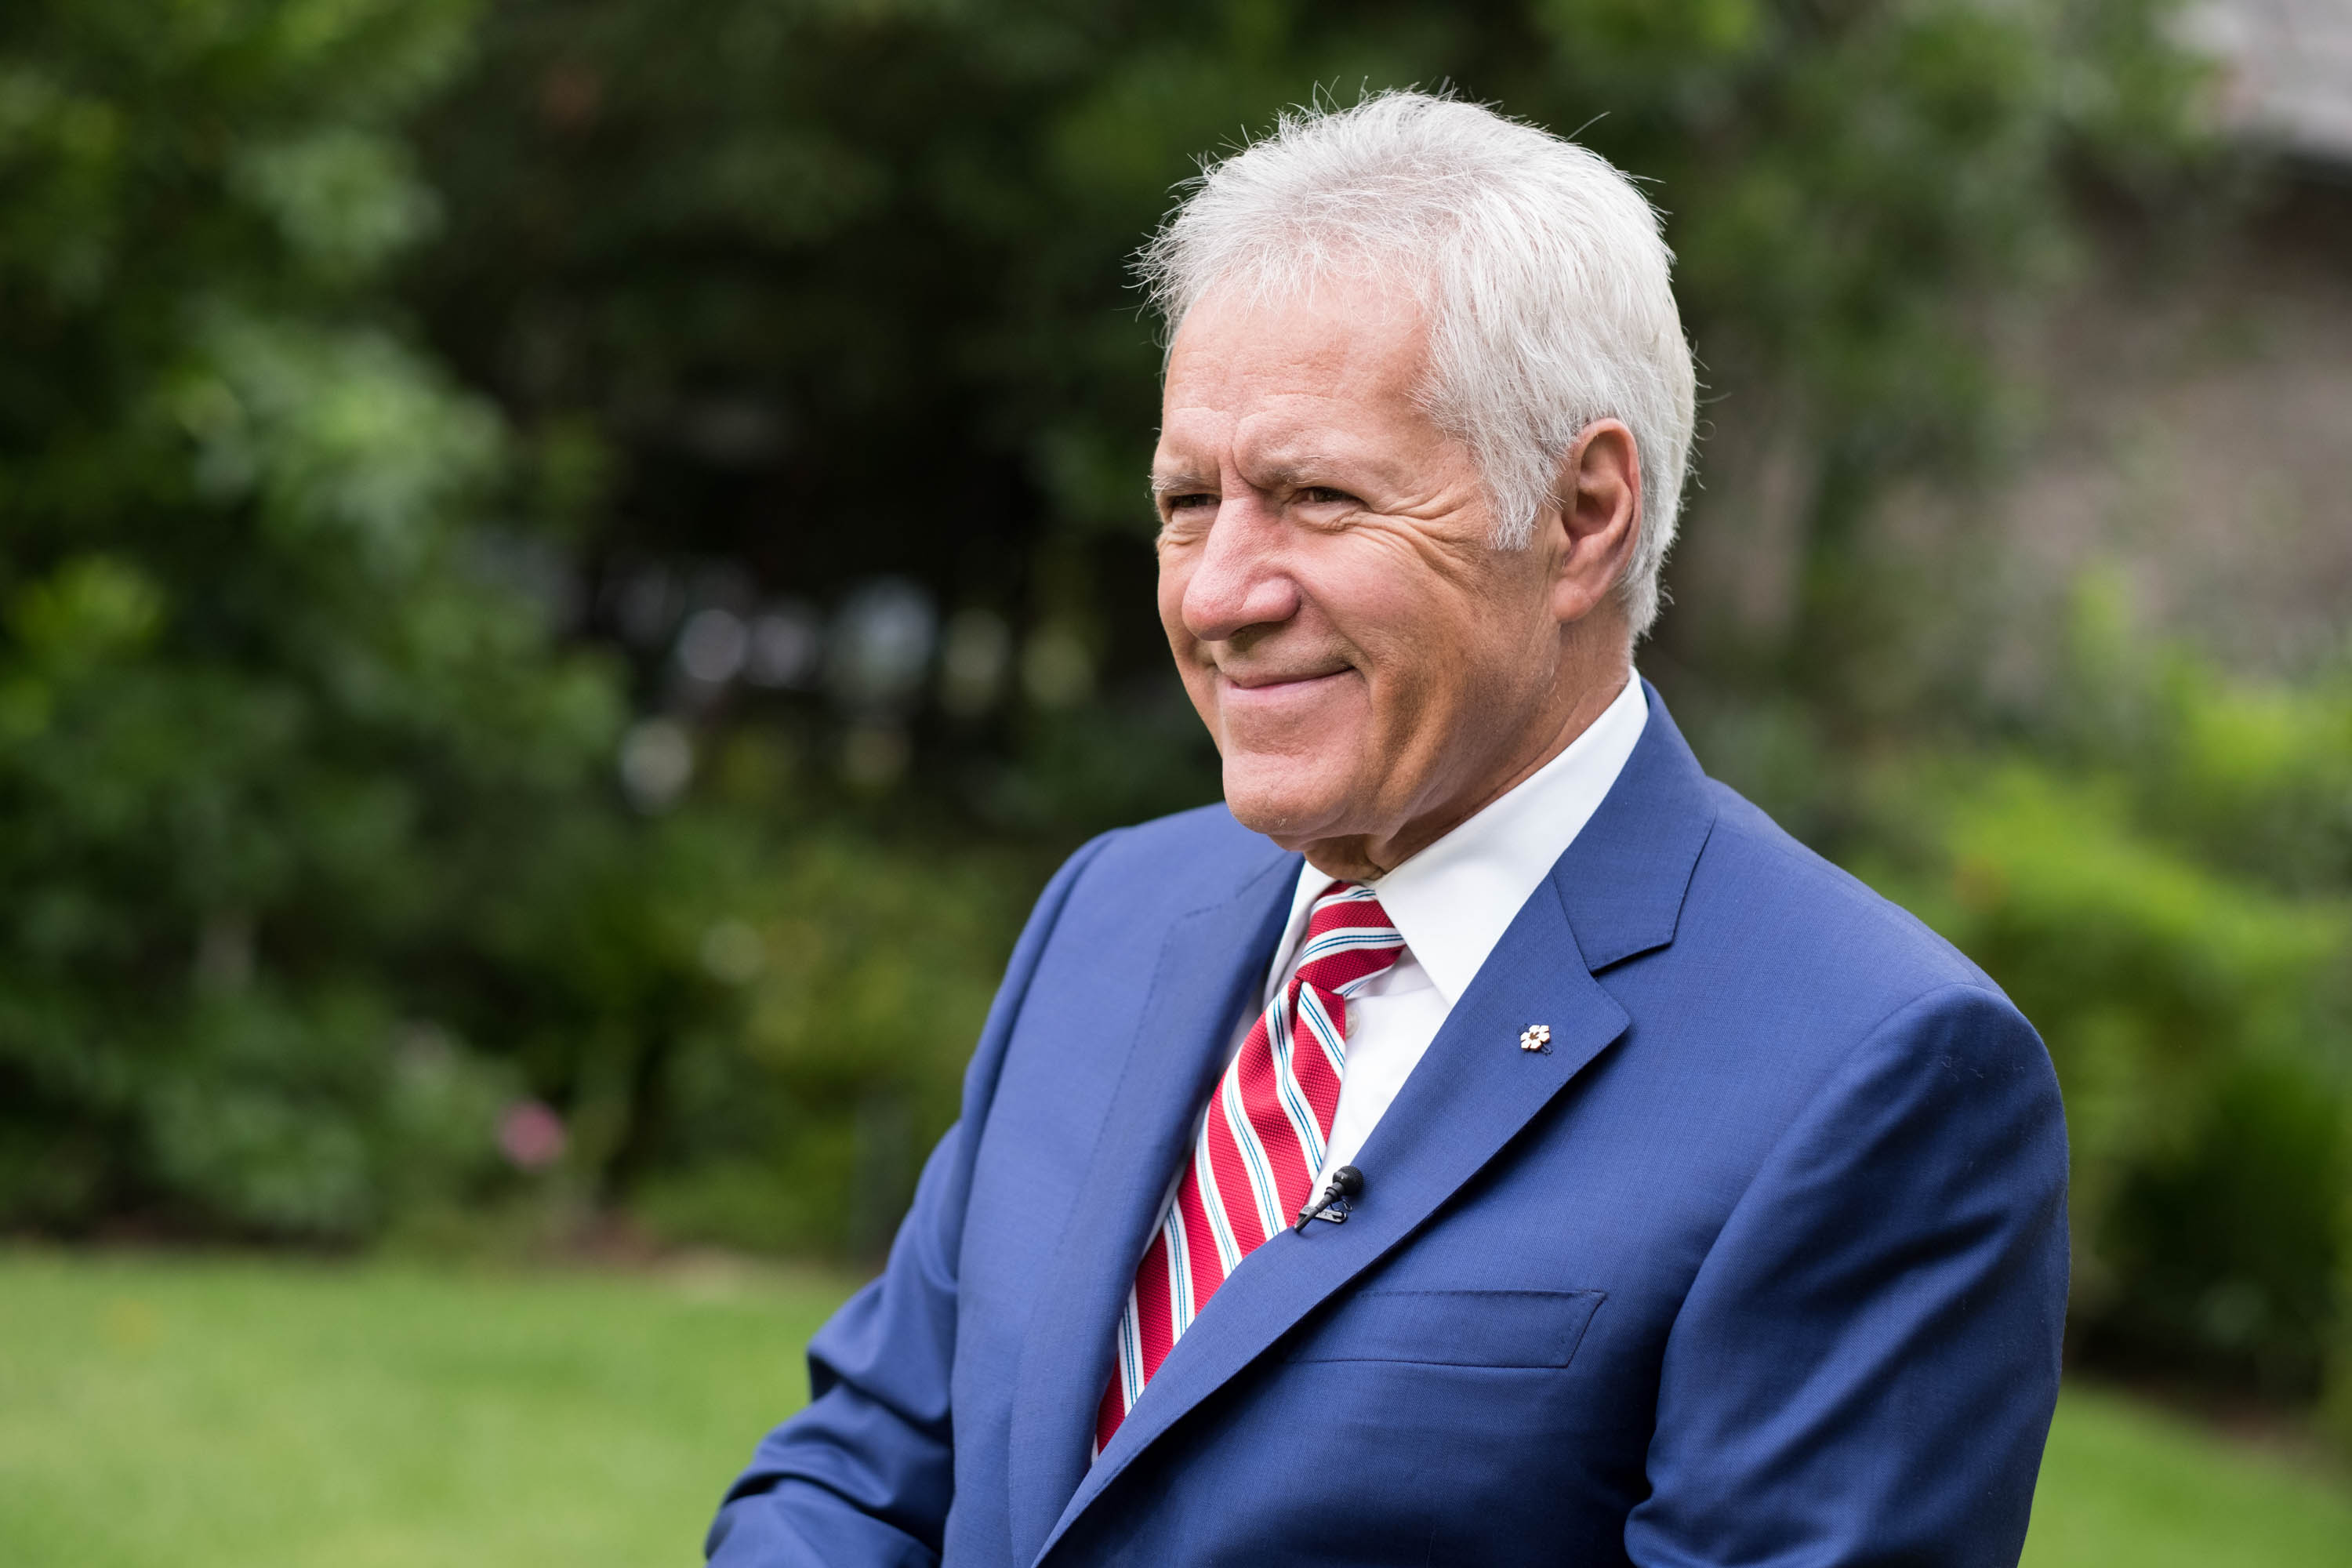 Alex Trebek attends the 150th anniversary of Canada's Confederation on June 30, 2017 in Los Angeles, California.